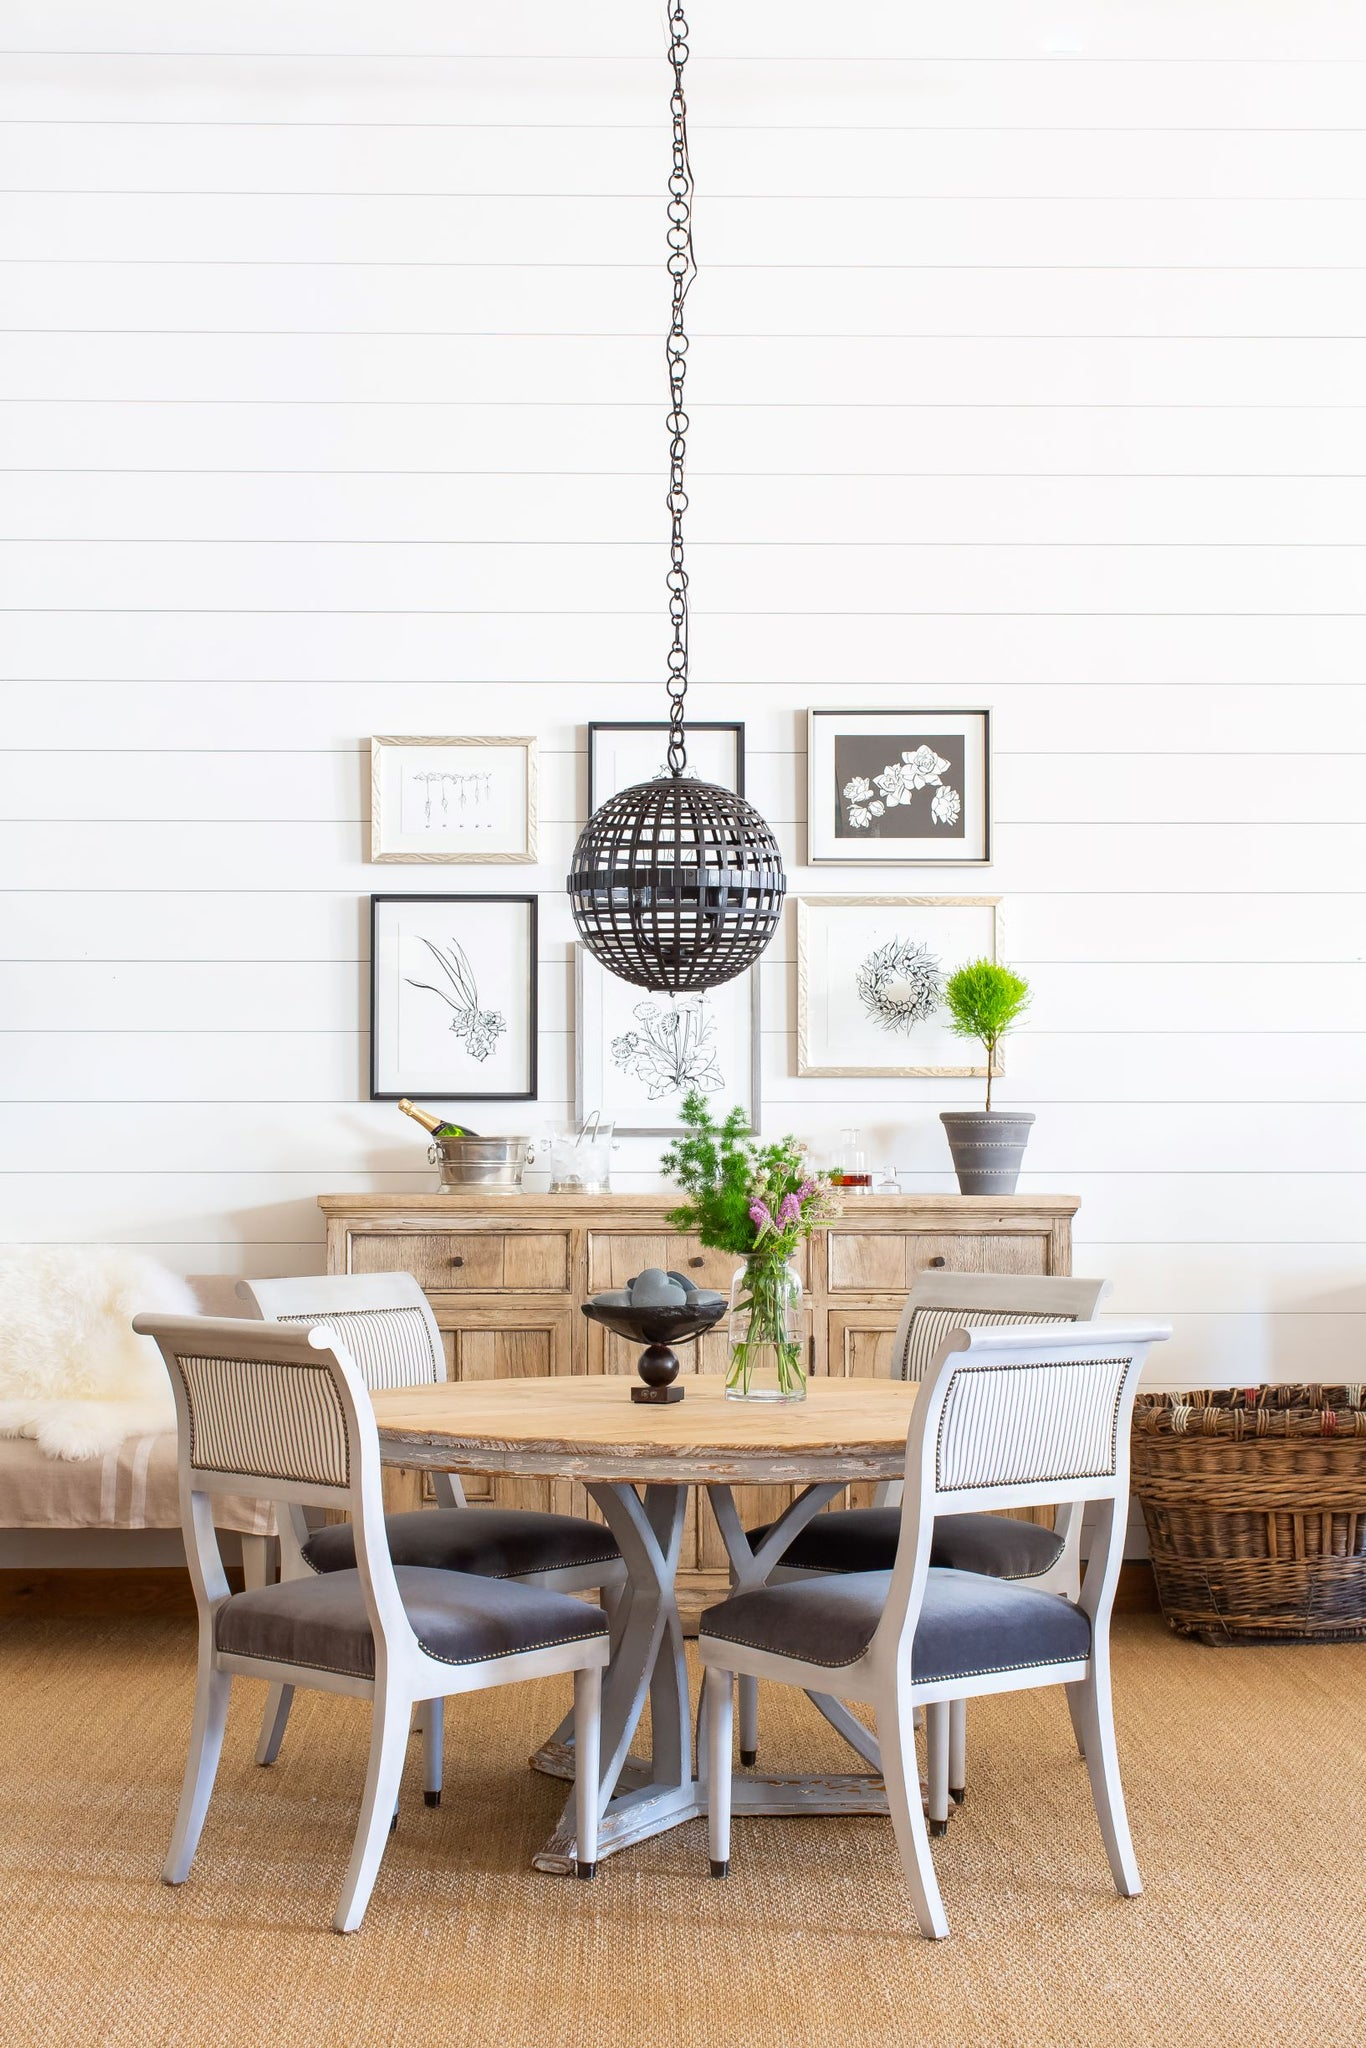 Monica Circle Dining Table with Natural Top and Distressed Grey Finish Pedestal Base Styled in Home